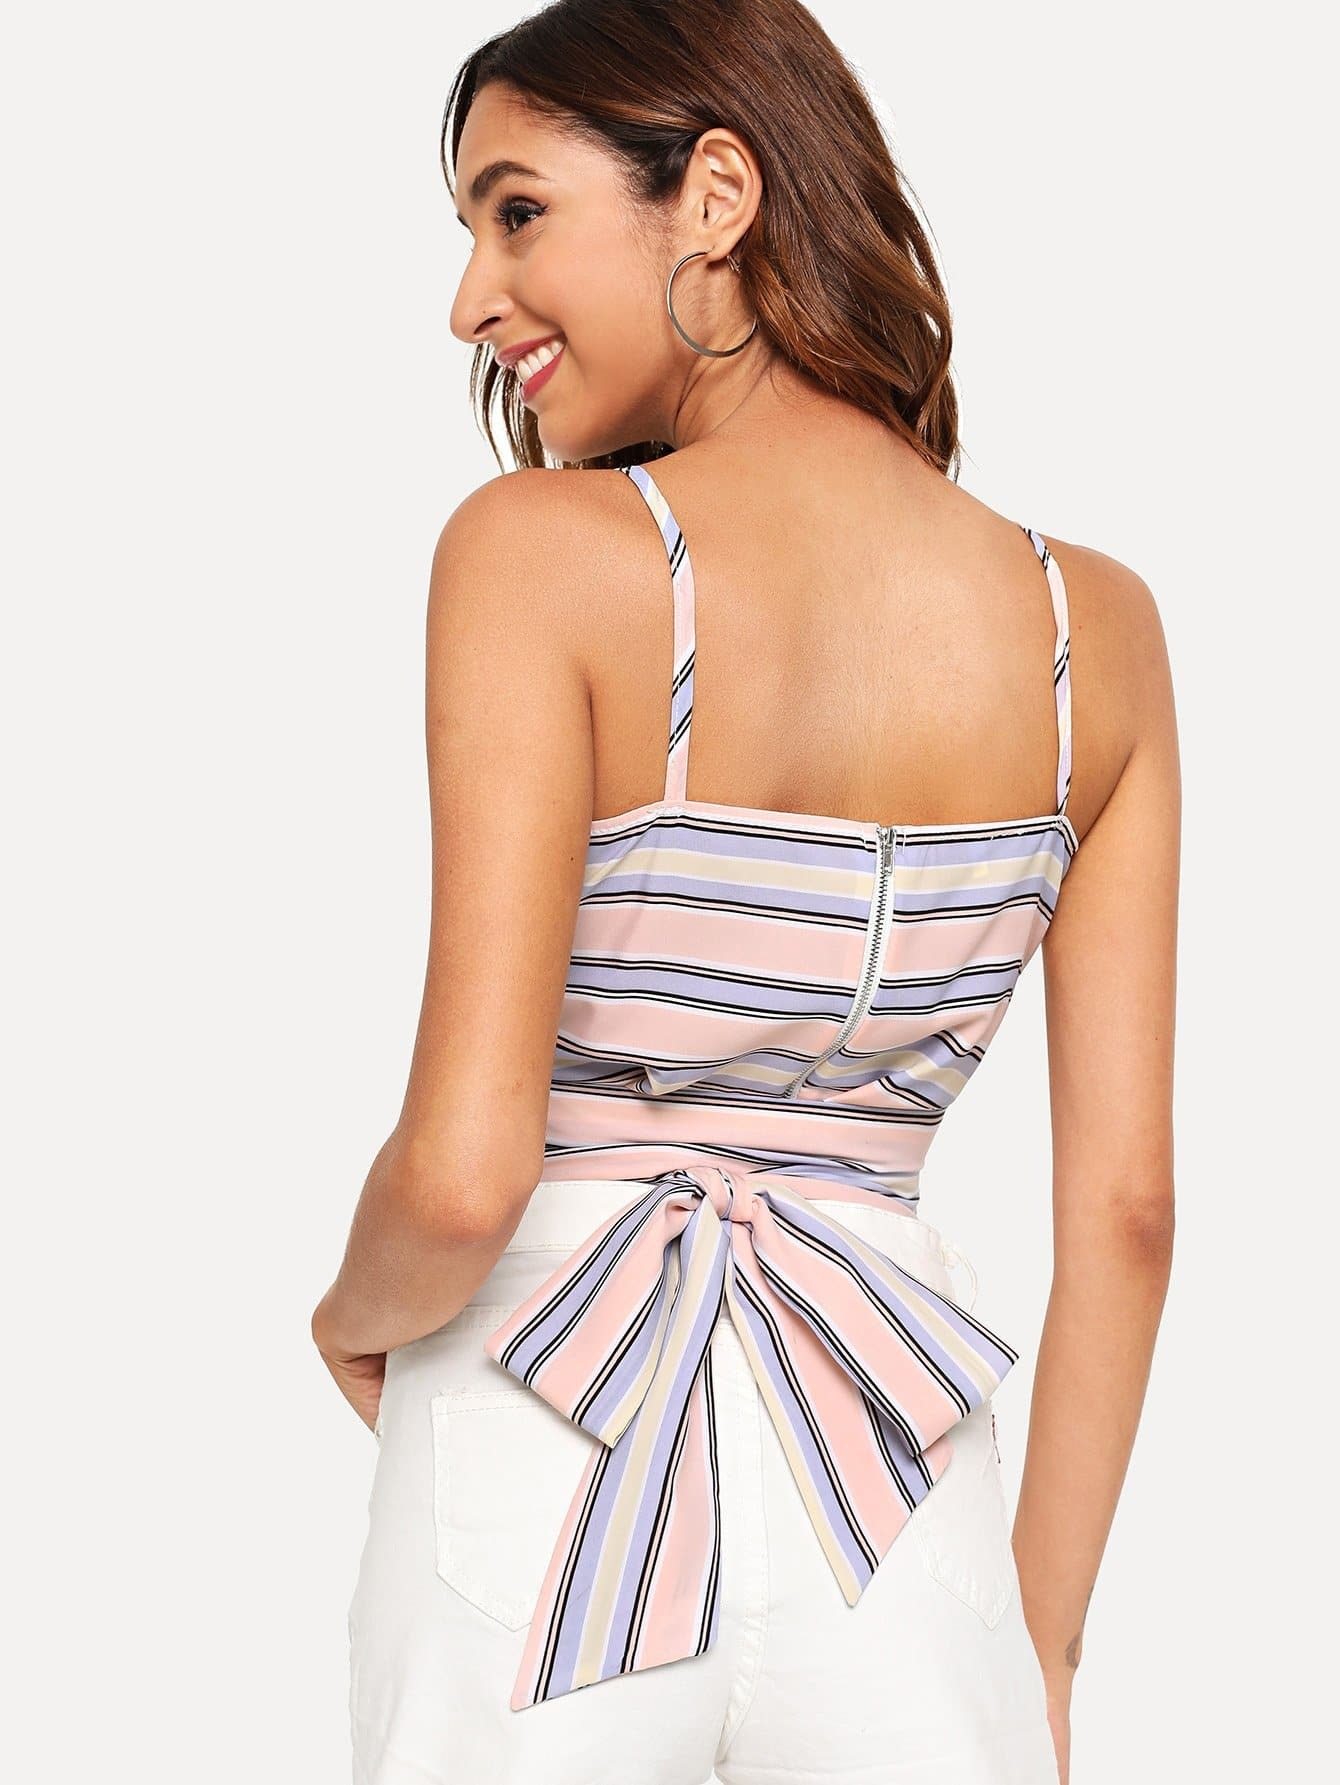 Striped Knot Back Surplice Cami Top 2017 direct selling sale flap european luxury sales supply full diamond tiger dinner bag hand high grade evening one generation